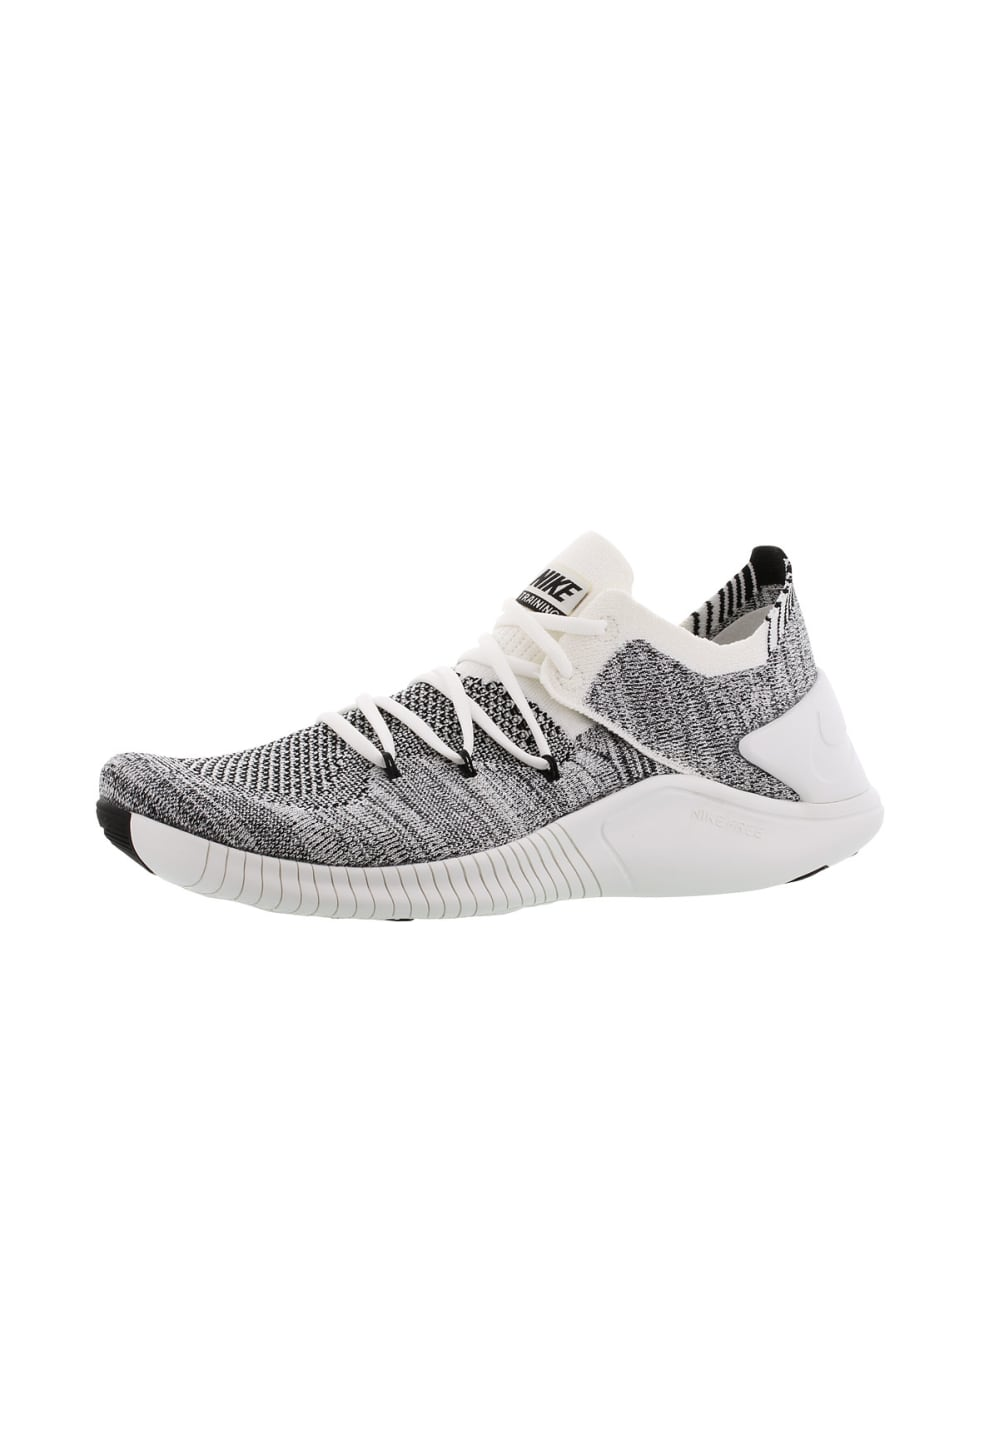 la meilleure attitude c451a ddf1e Nike Free Tr Flyknit 3 - Fitness shoes for Women - White